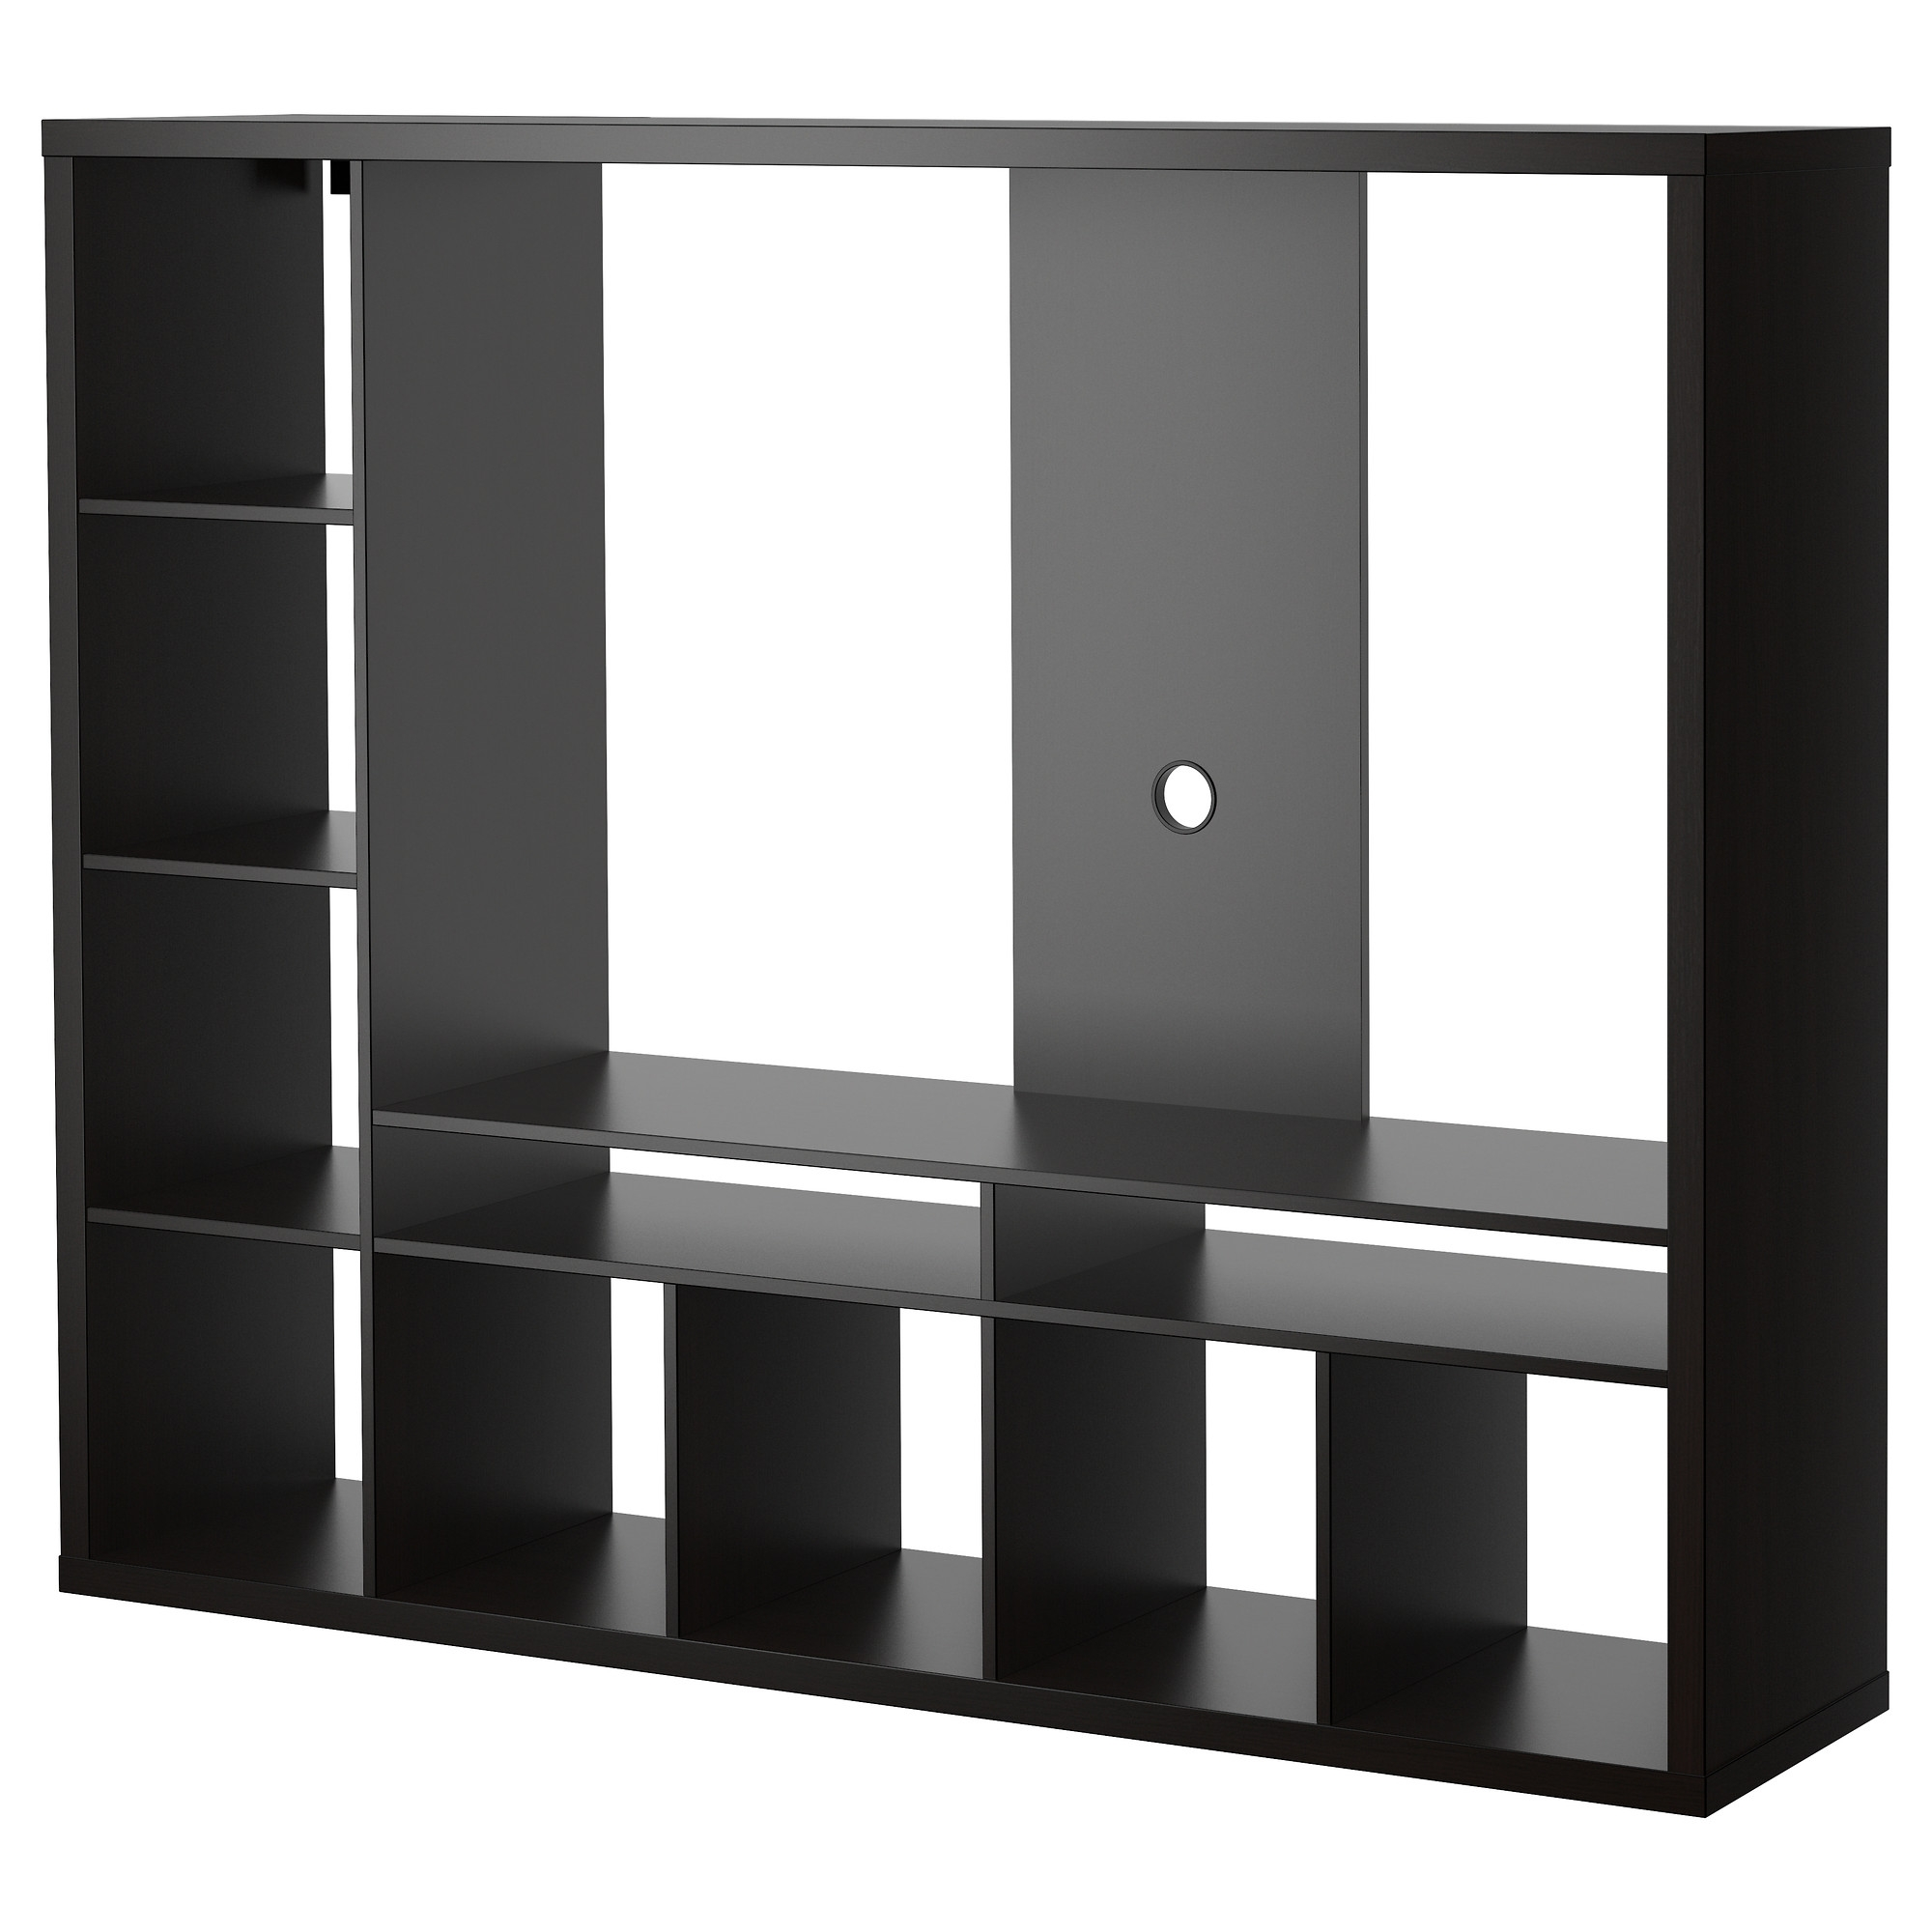 Lappland Tv Storage Unit Black Brown 183×147 Cm Ikea Intended For Tv Storage Units (#10 of 15)